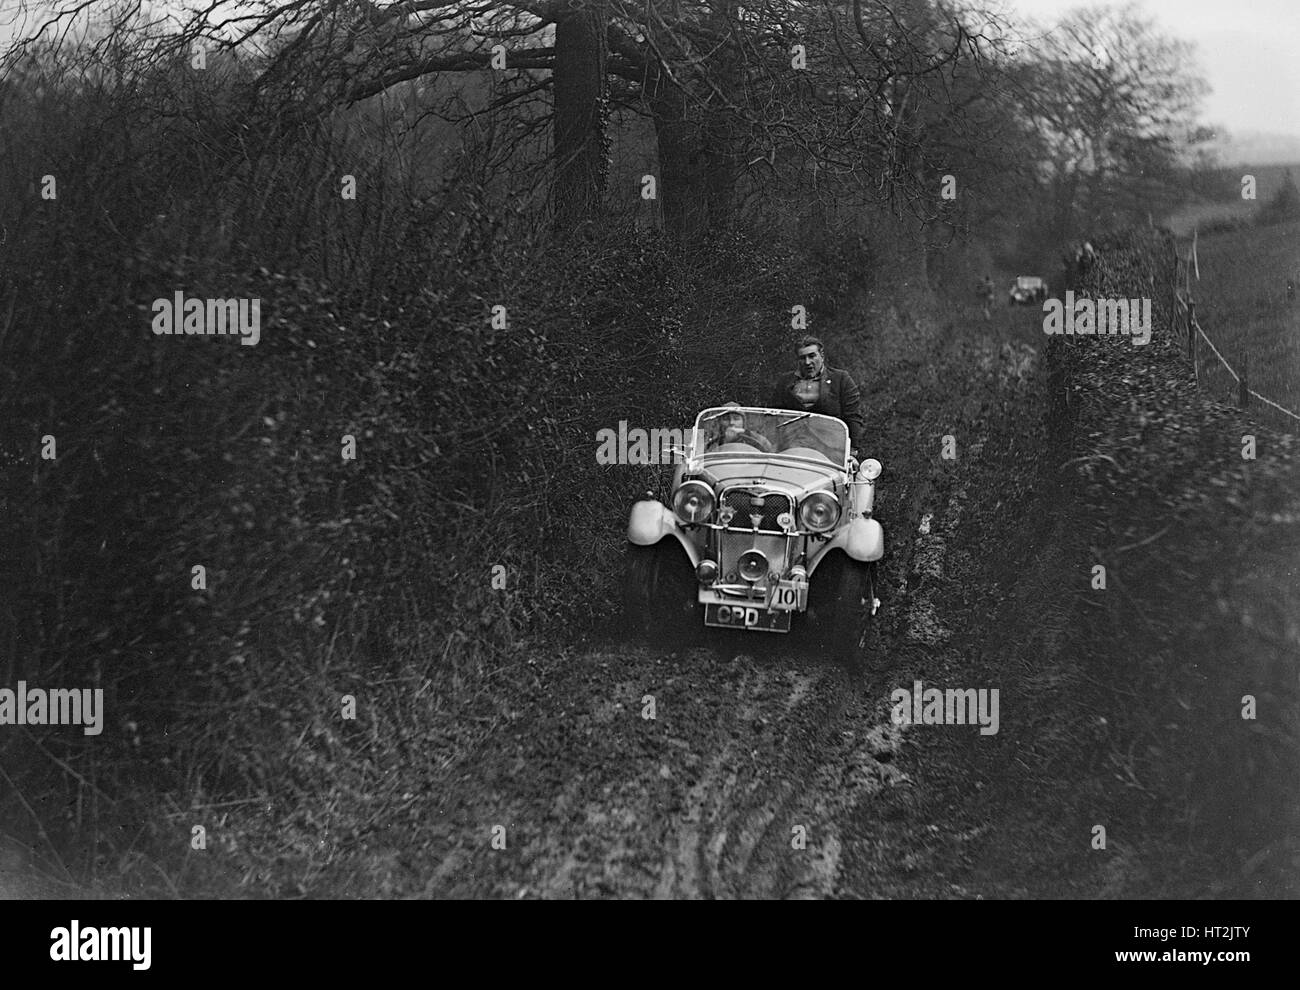 1935 1496 cc Singer Le Mans taking part in a motoring trial, 1936. Artist: Bill Brunell. - Stock Image